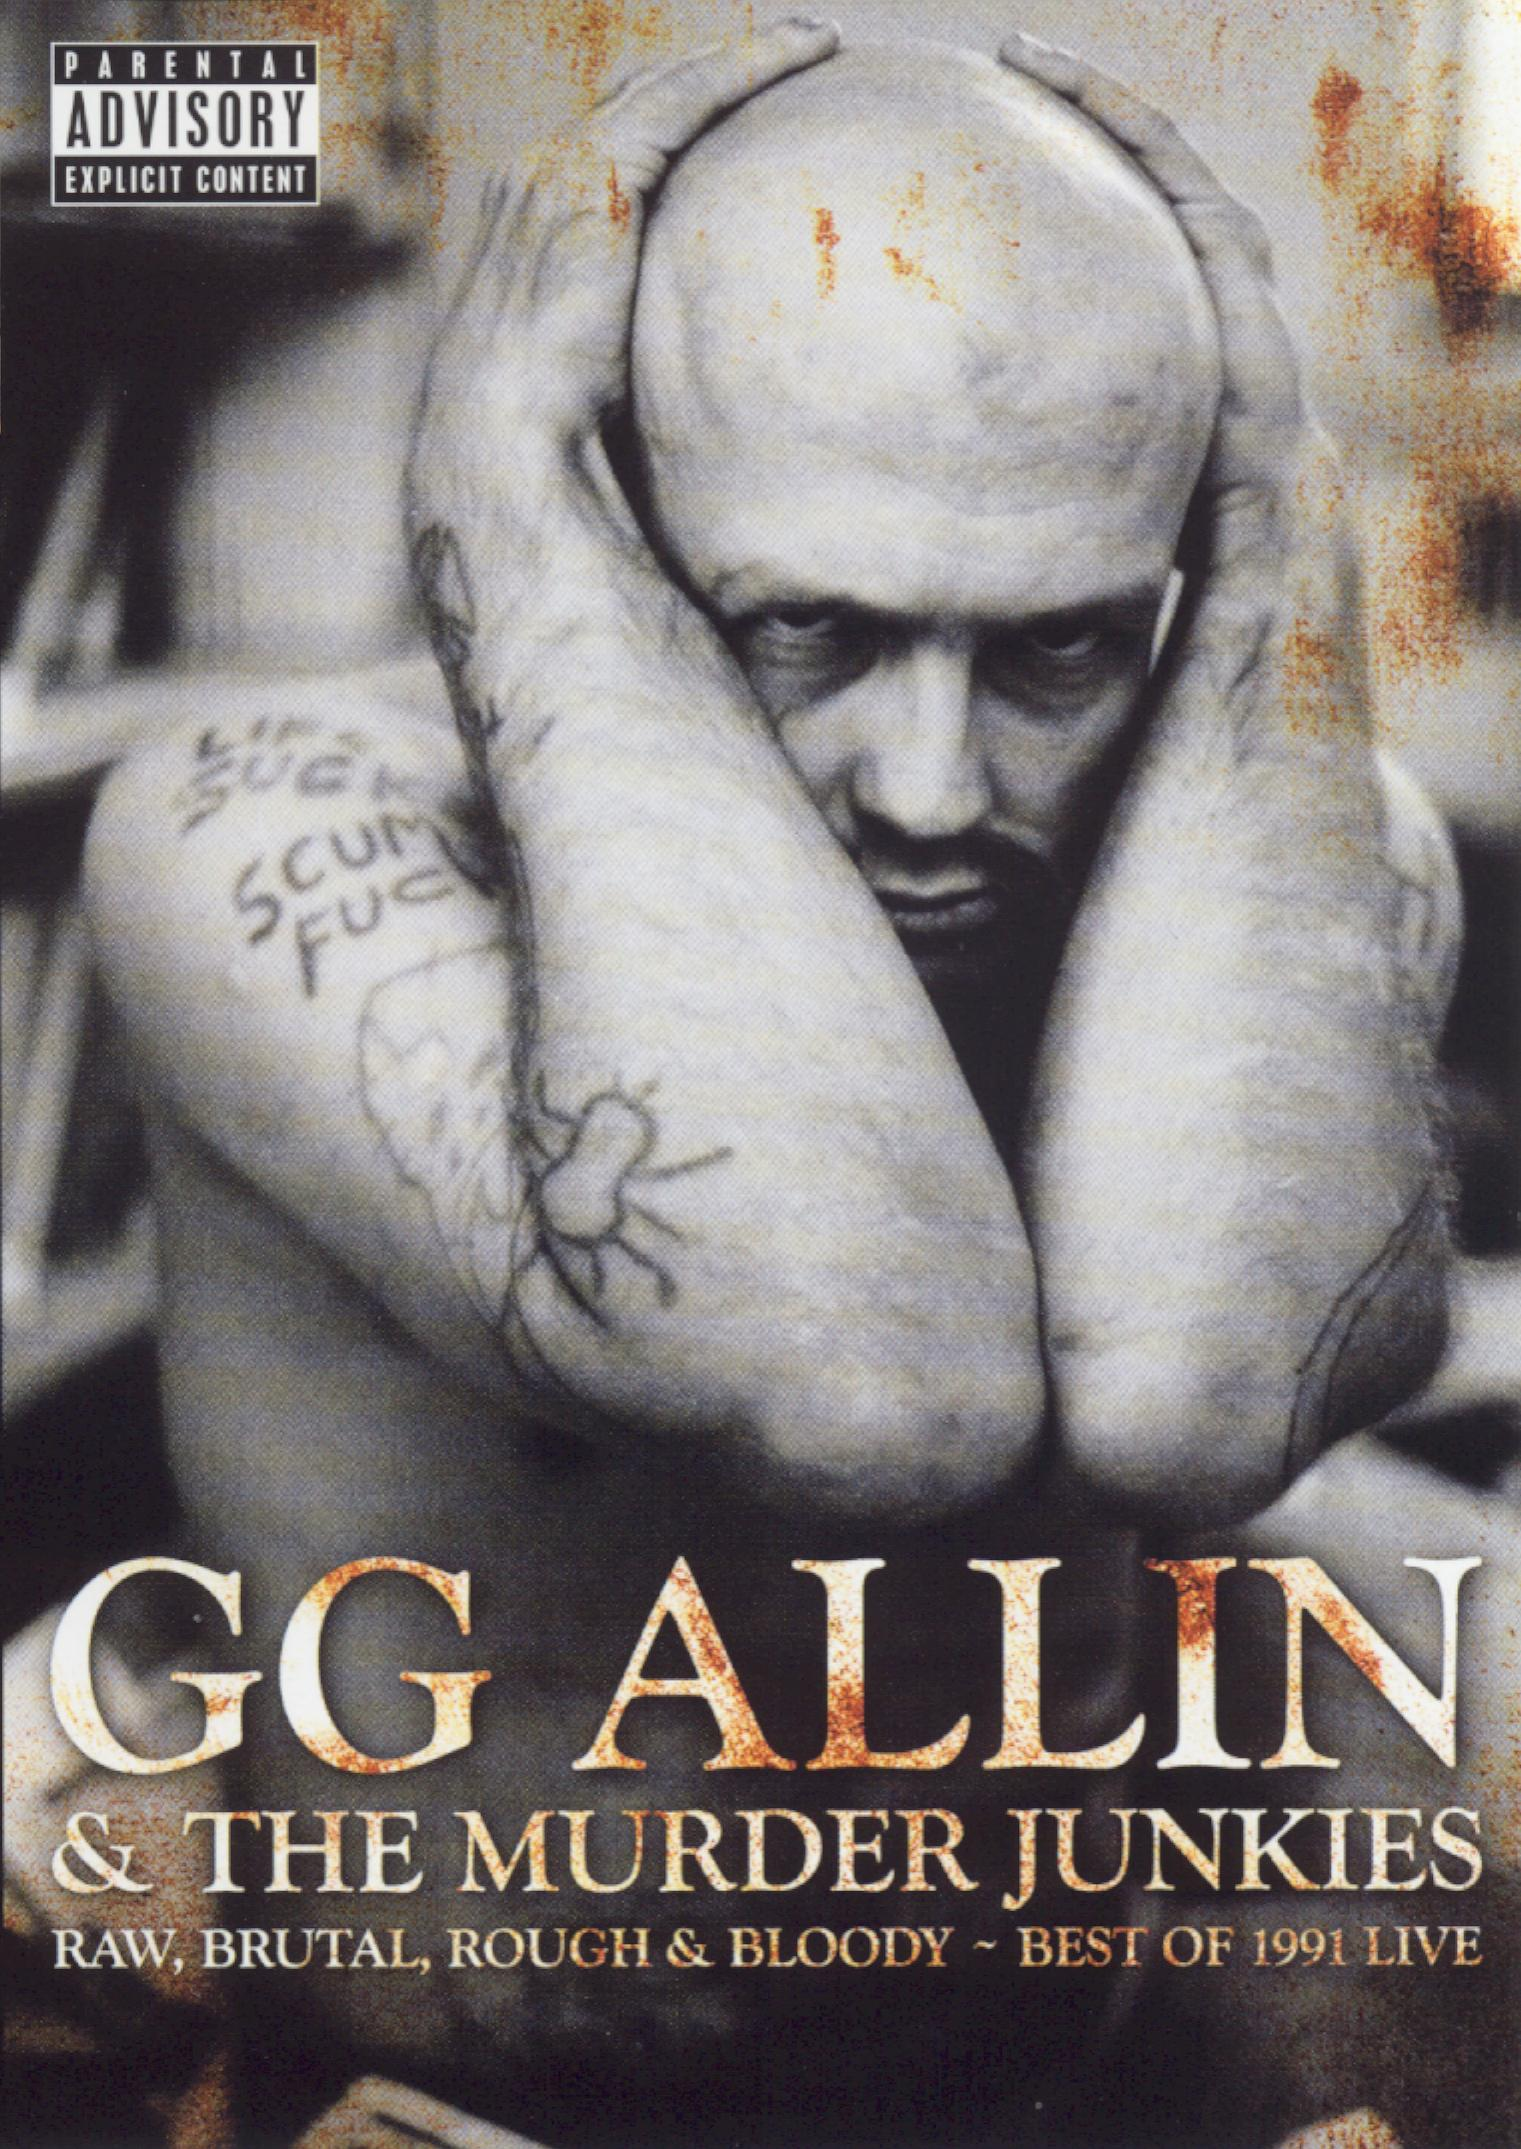 G.G. Allin: Raw, Brutal, Rough & Bloody - The Best of 1991 Live